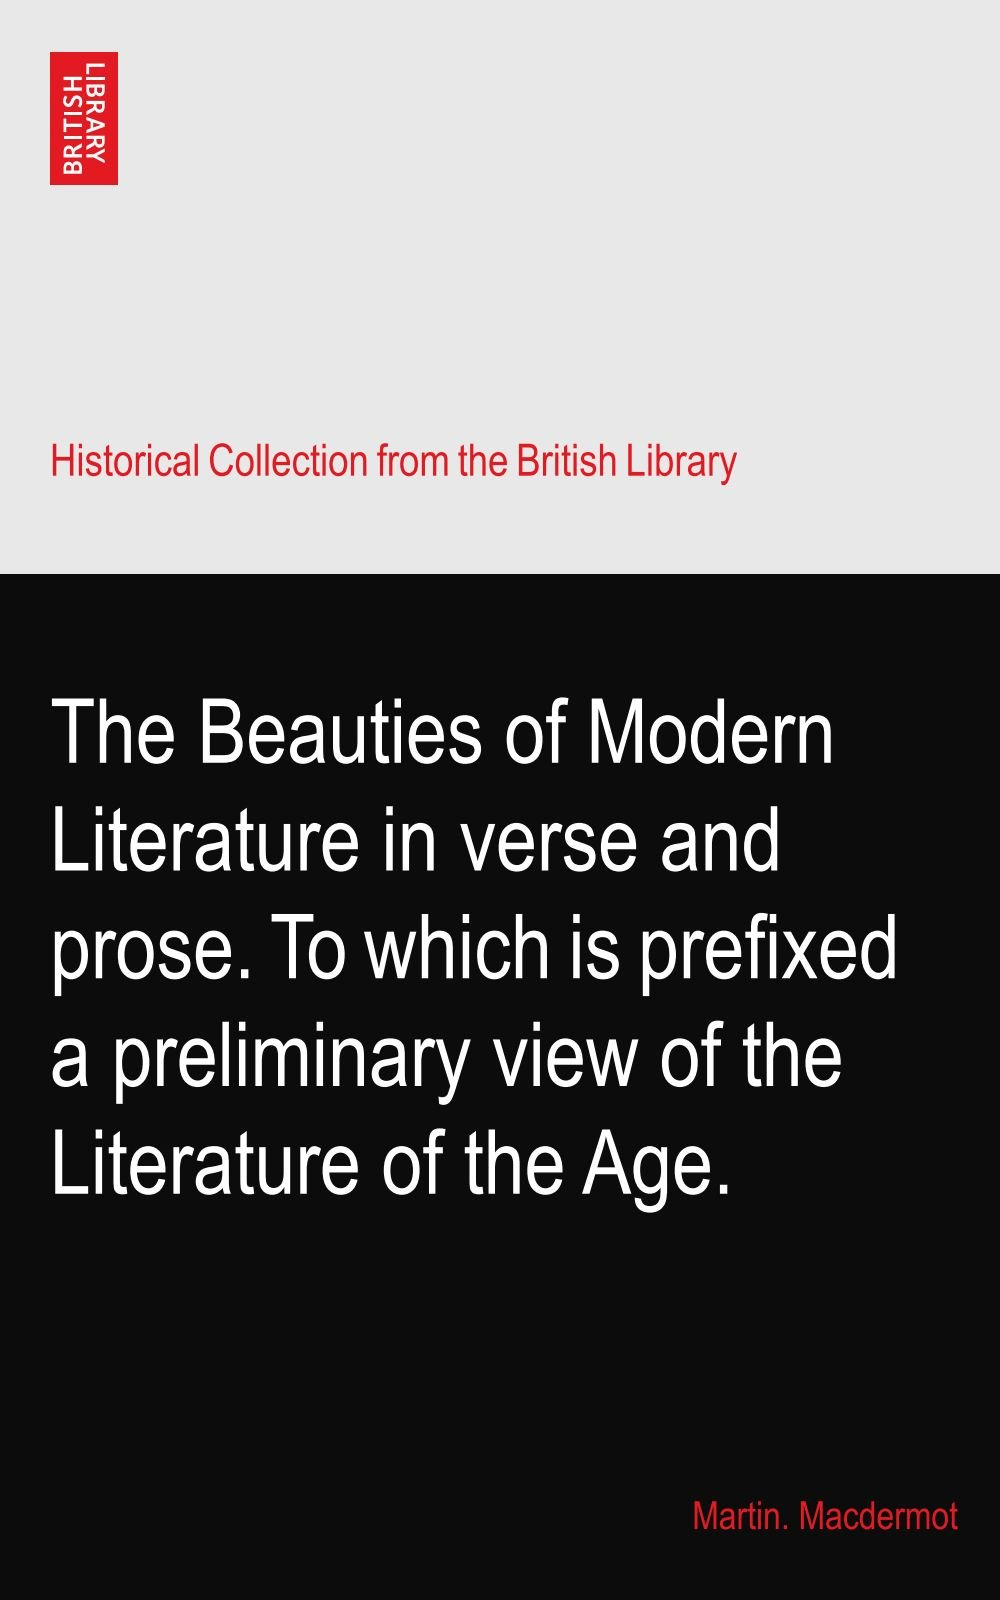 The Beauties of Modern Literature in verse and prose. To which is prefixed a preliminary view of the Literature of the Age. ebook